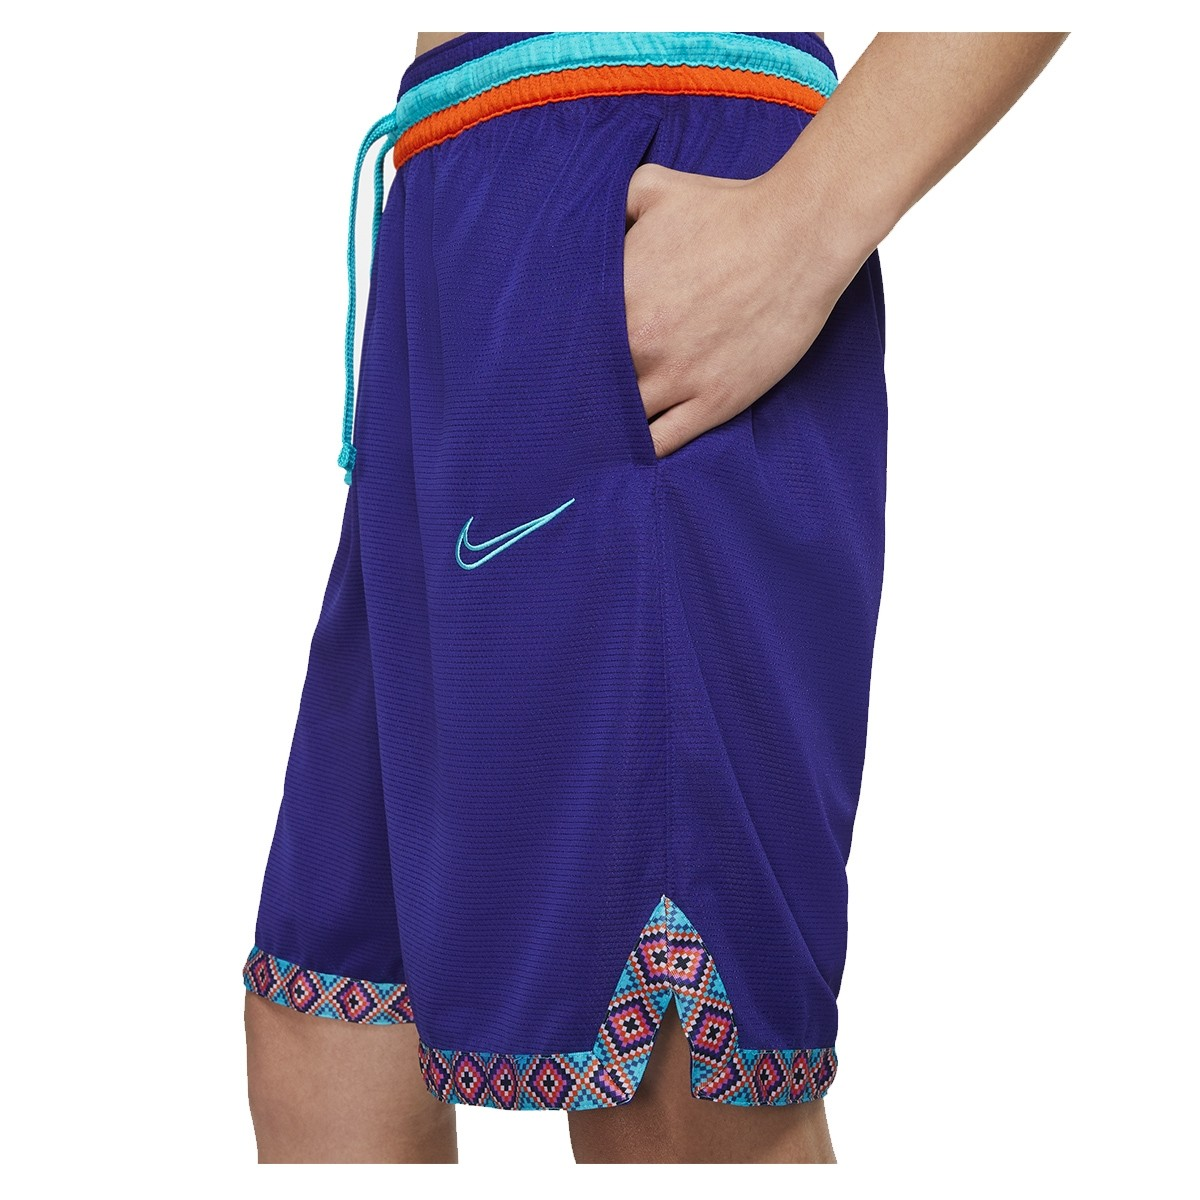 Nike DNA Short 'Regency Purple'-BV9446-590